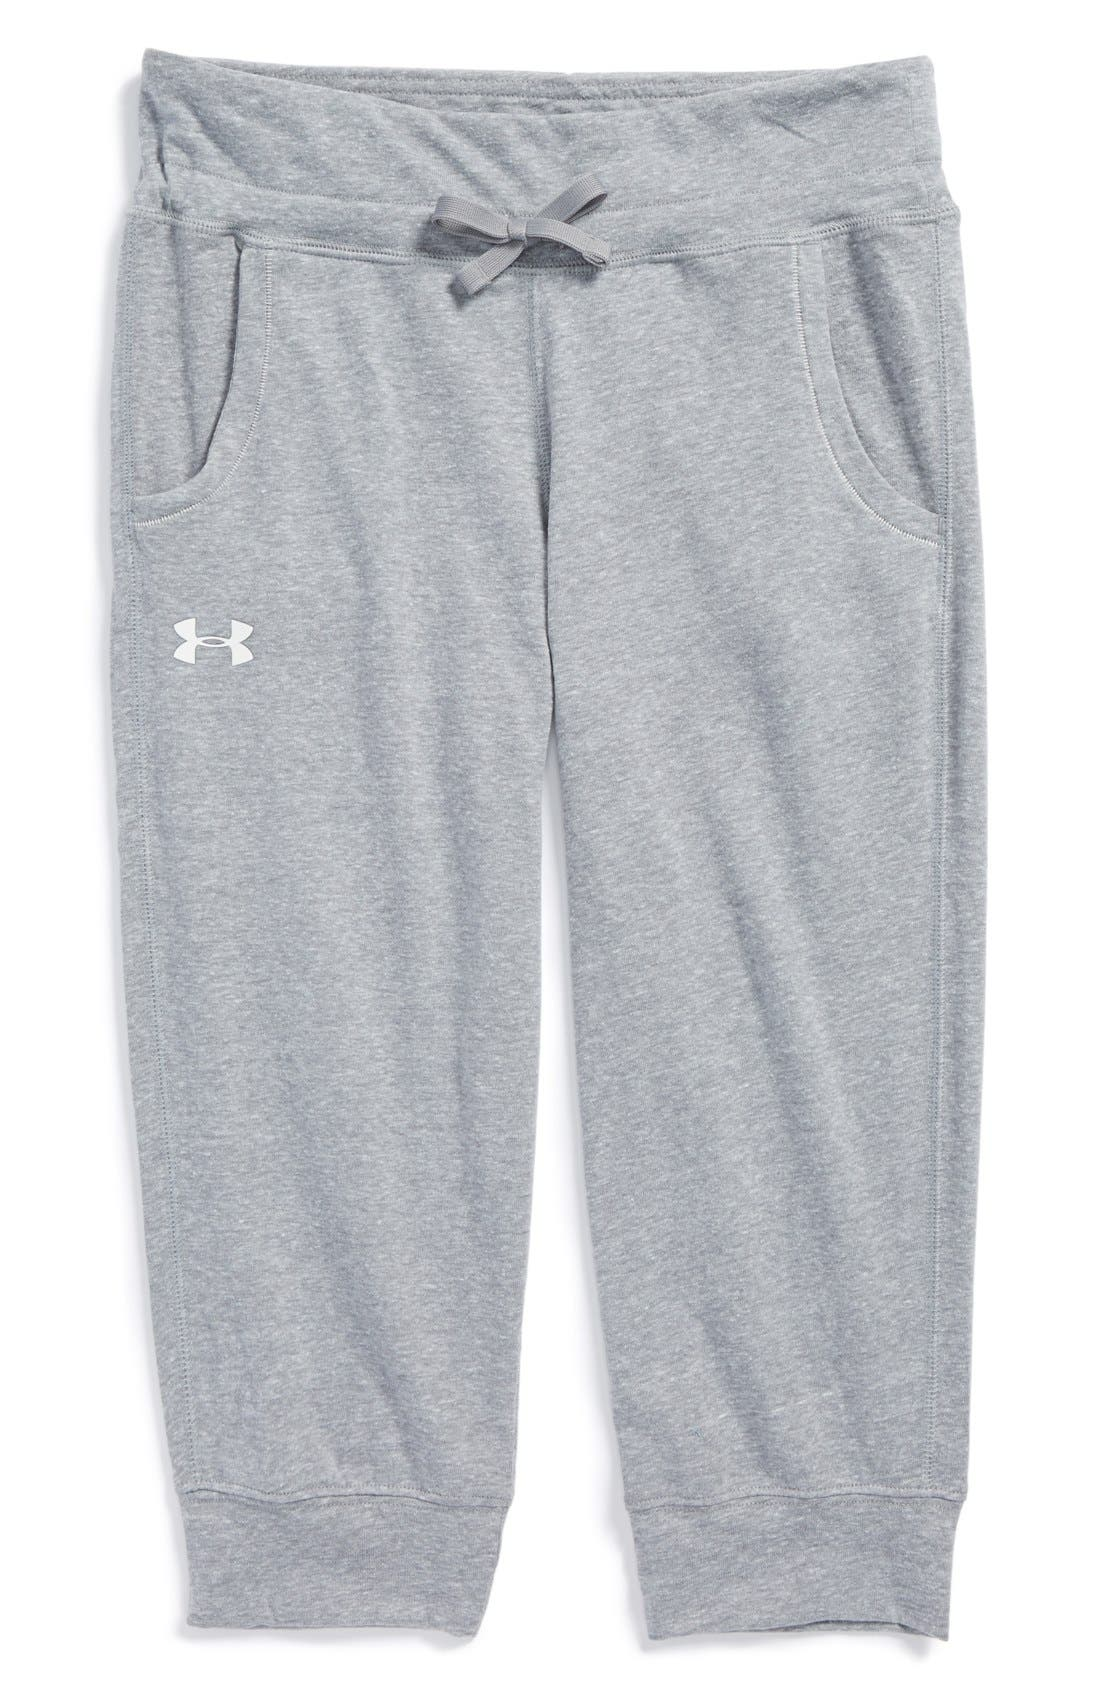 Main Image - Under Armour Capri Sweatpants (Big Girls)